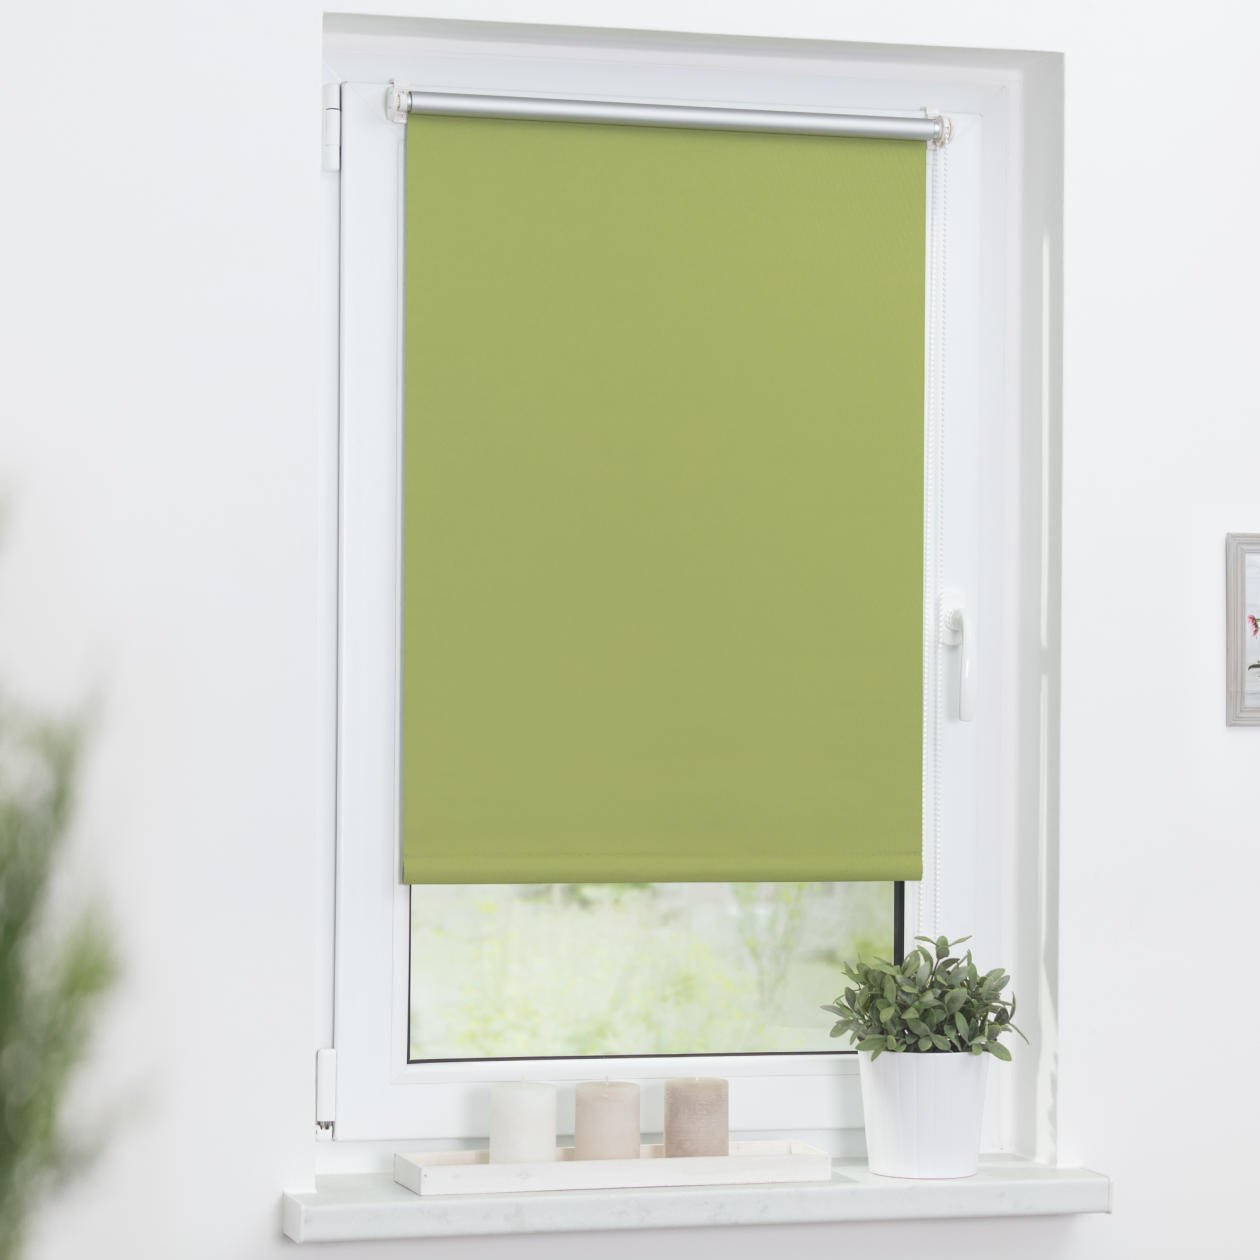 Lichtblick Thermo Roller Blind With Pre-Fixed Clamps No Drilling Necessary Black-Out Silver Coating Green 60 x 150 cm green